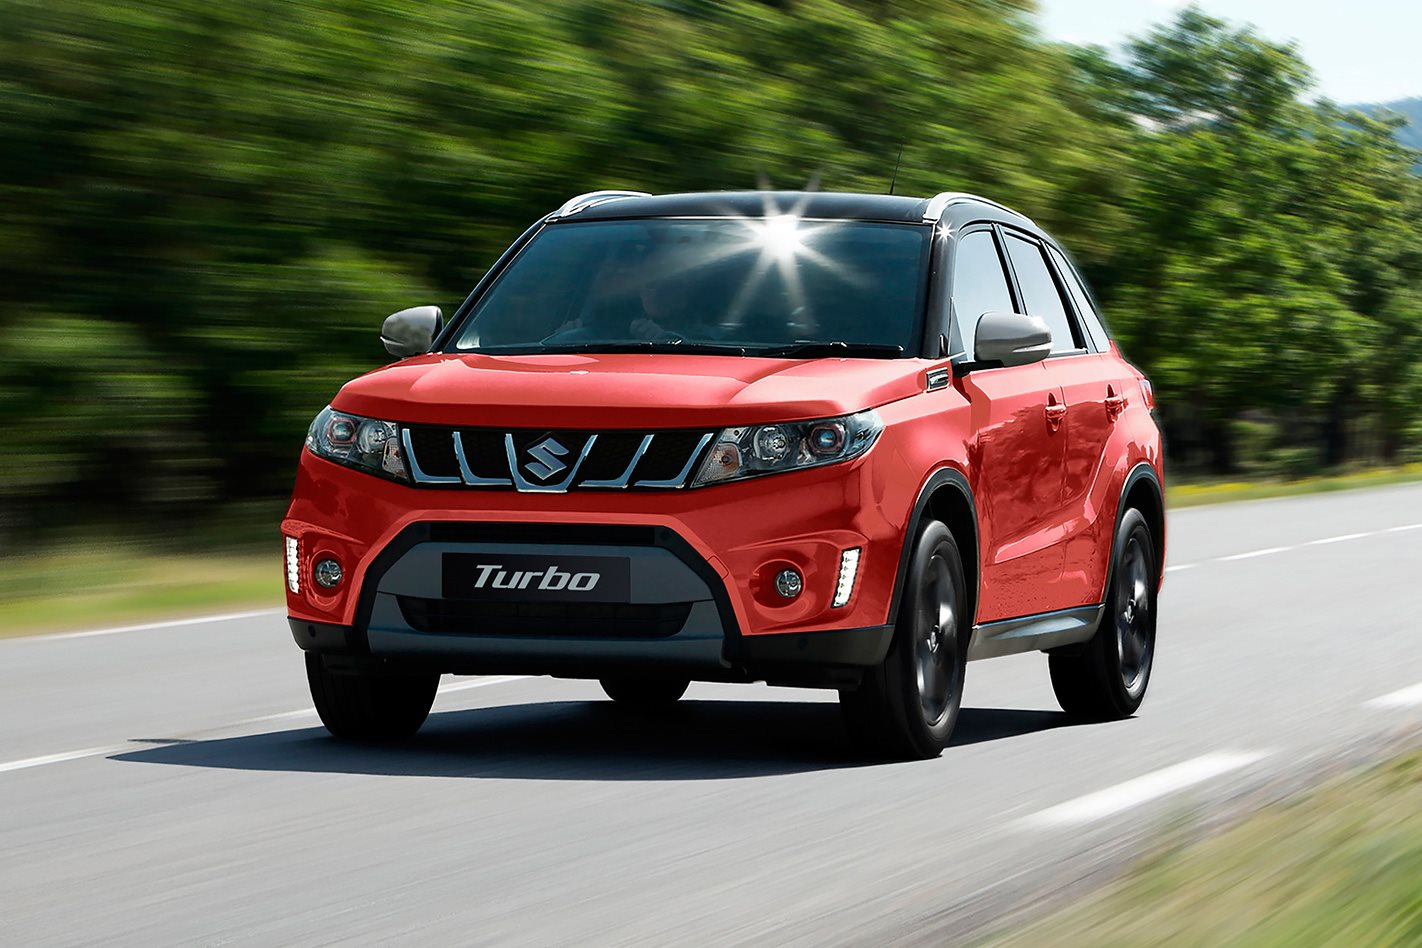 2016 suzuki vitara s turbo 2wd review wheels. Black Bedroom Furniture Sets. Home Design Ideas